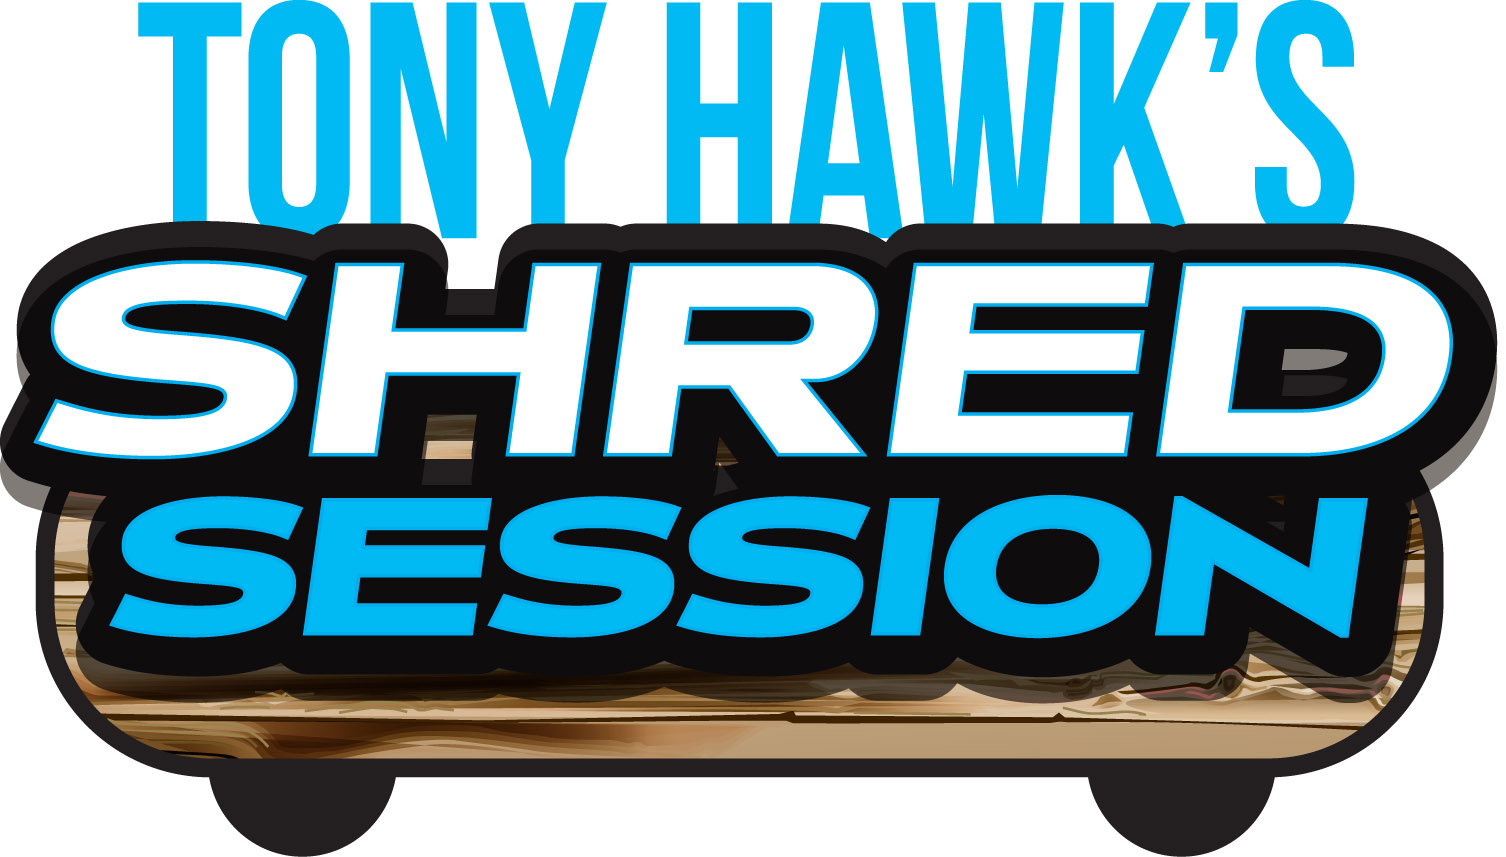 Tony Hawk's Shred Session coming to iOS and Android ...